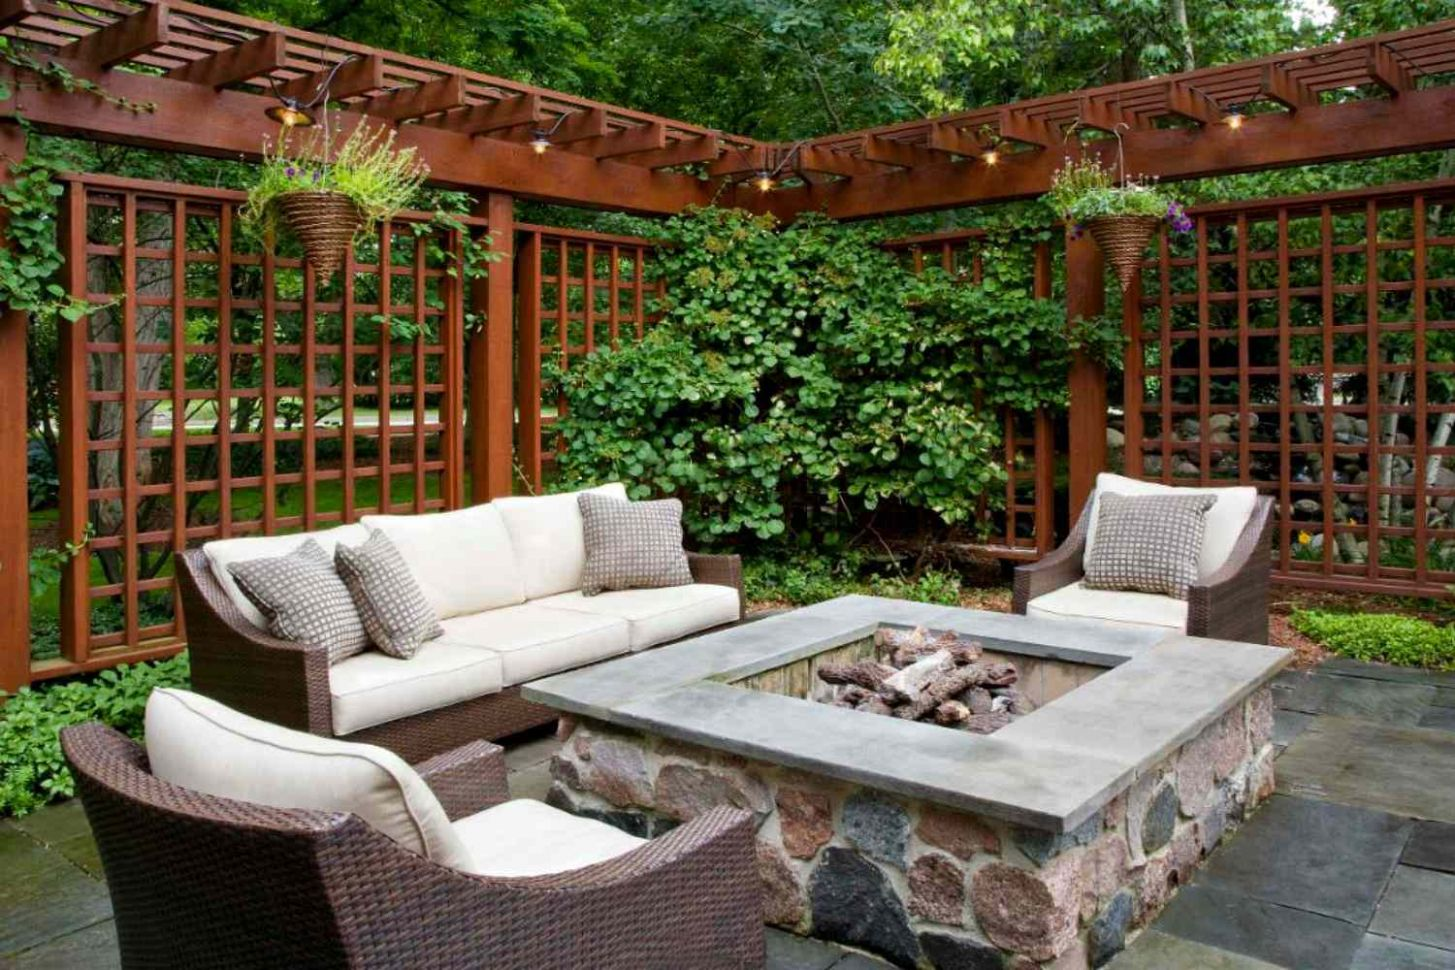 12 Landscaping Ideas for Creating Privacy in Your Yard - backyard ideas to block neighbors